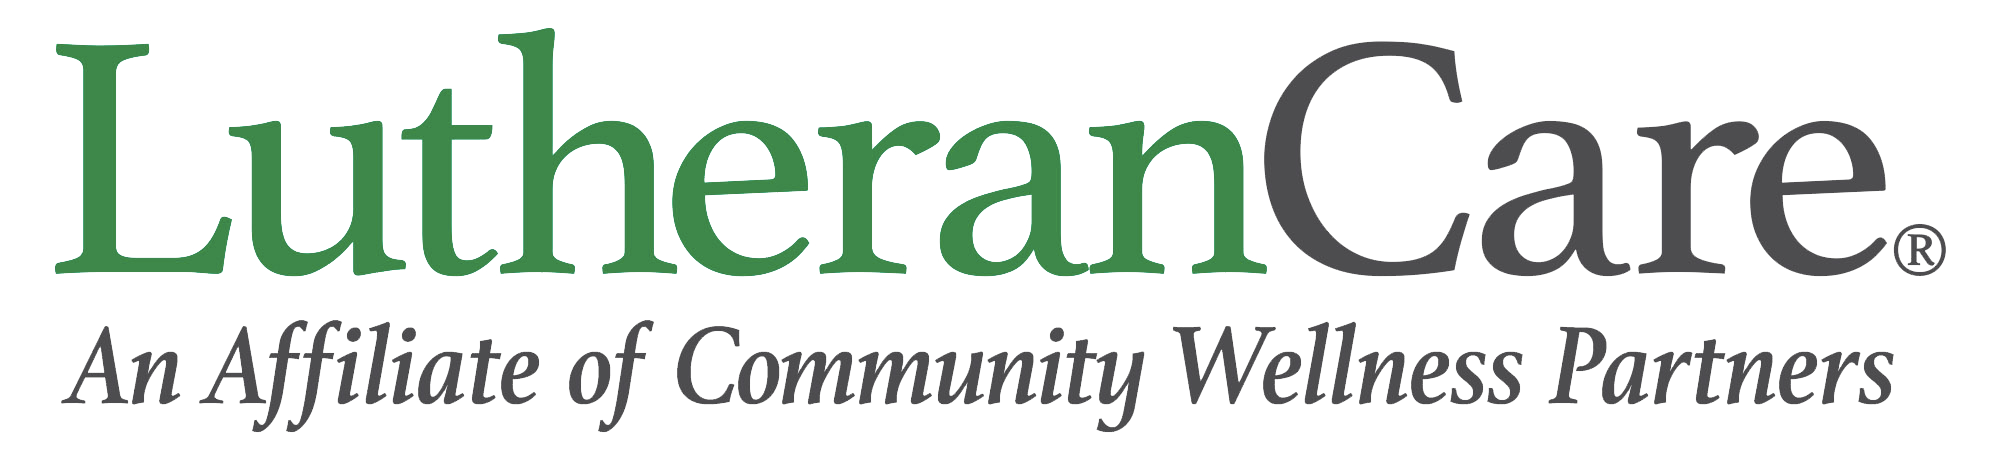 Lutheran Care, An Affiliate of Community Wellness Partners